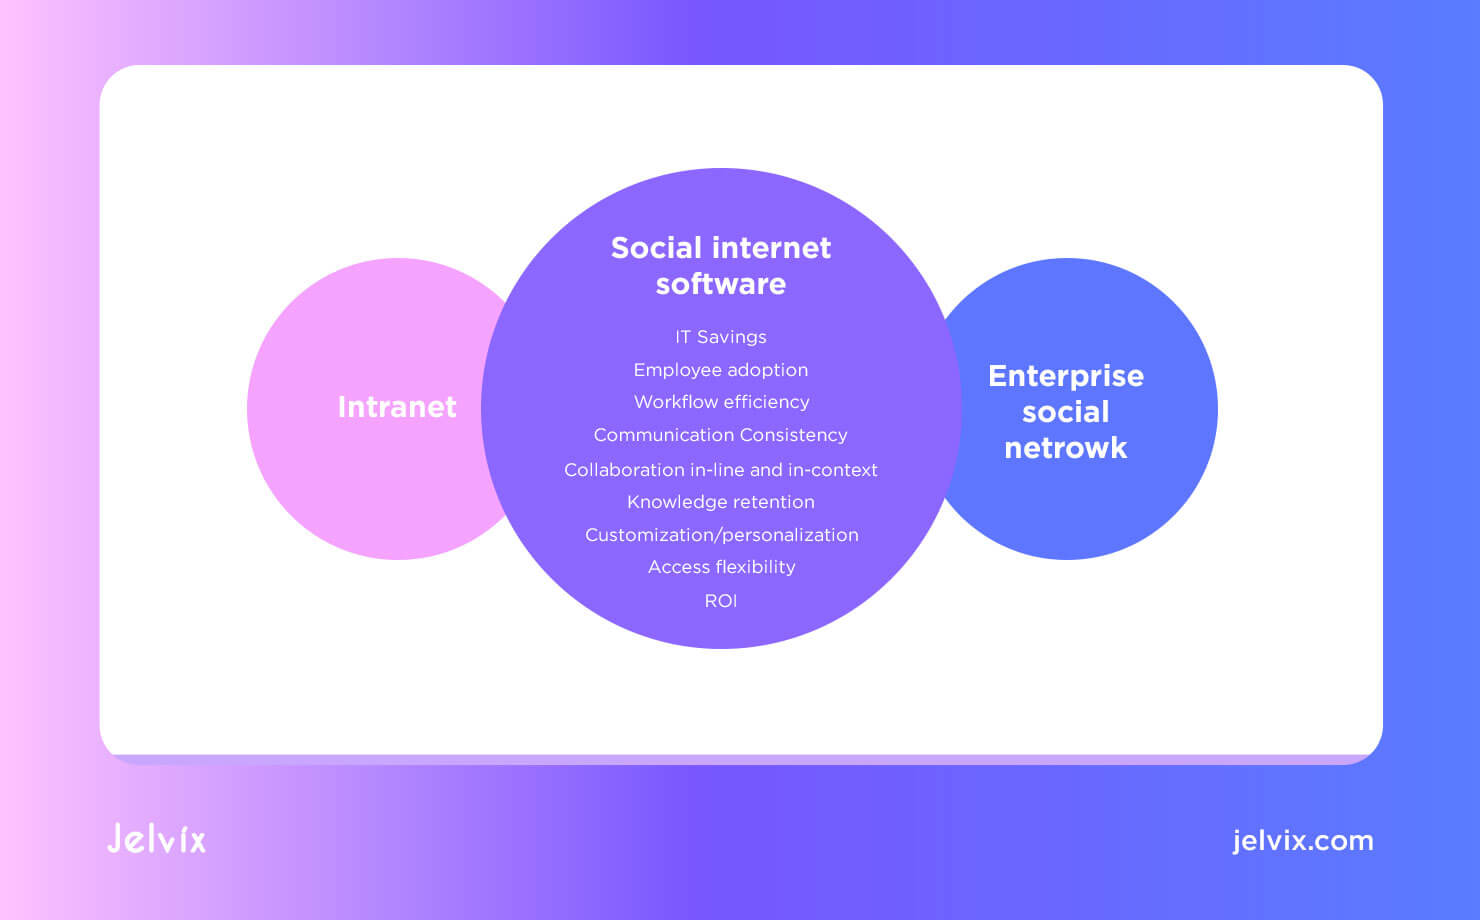 Social Intranets pic